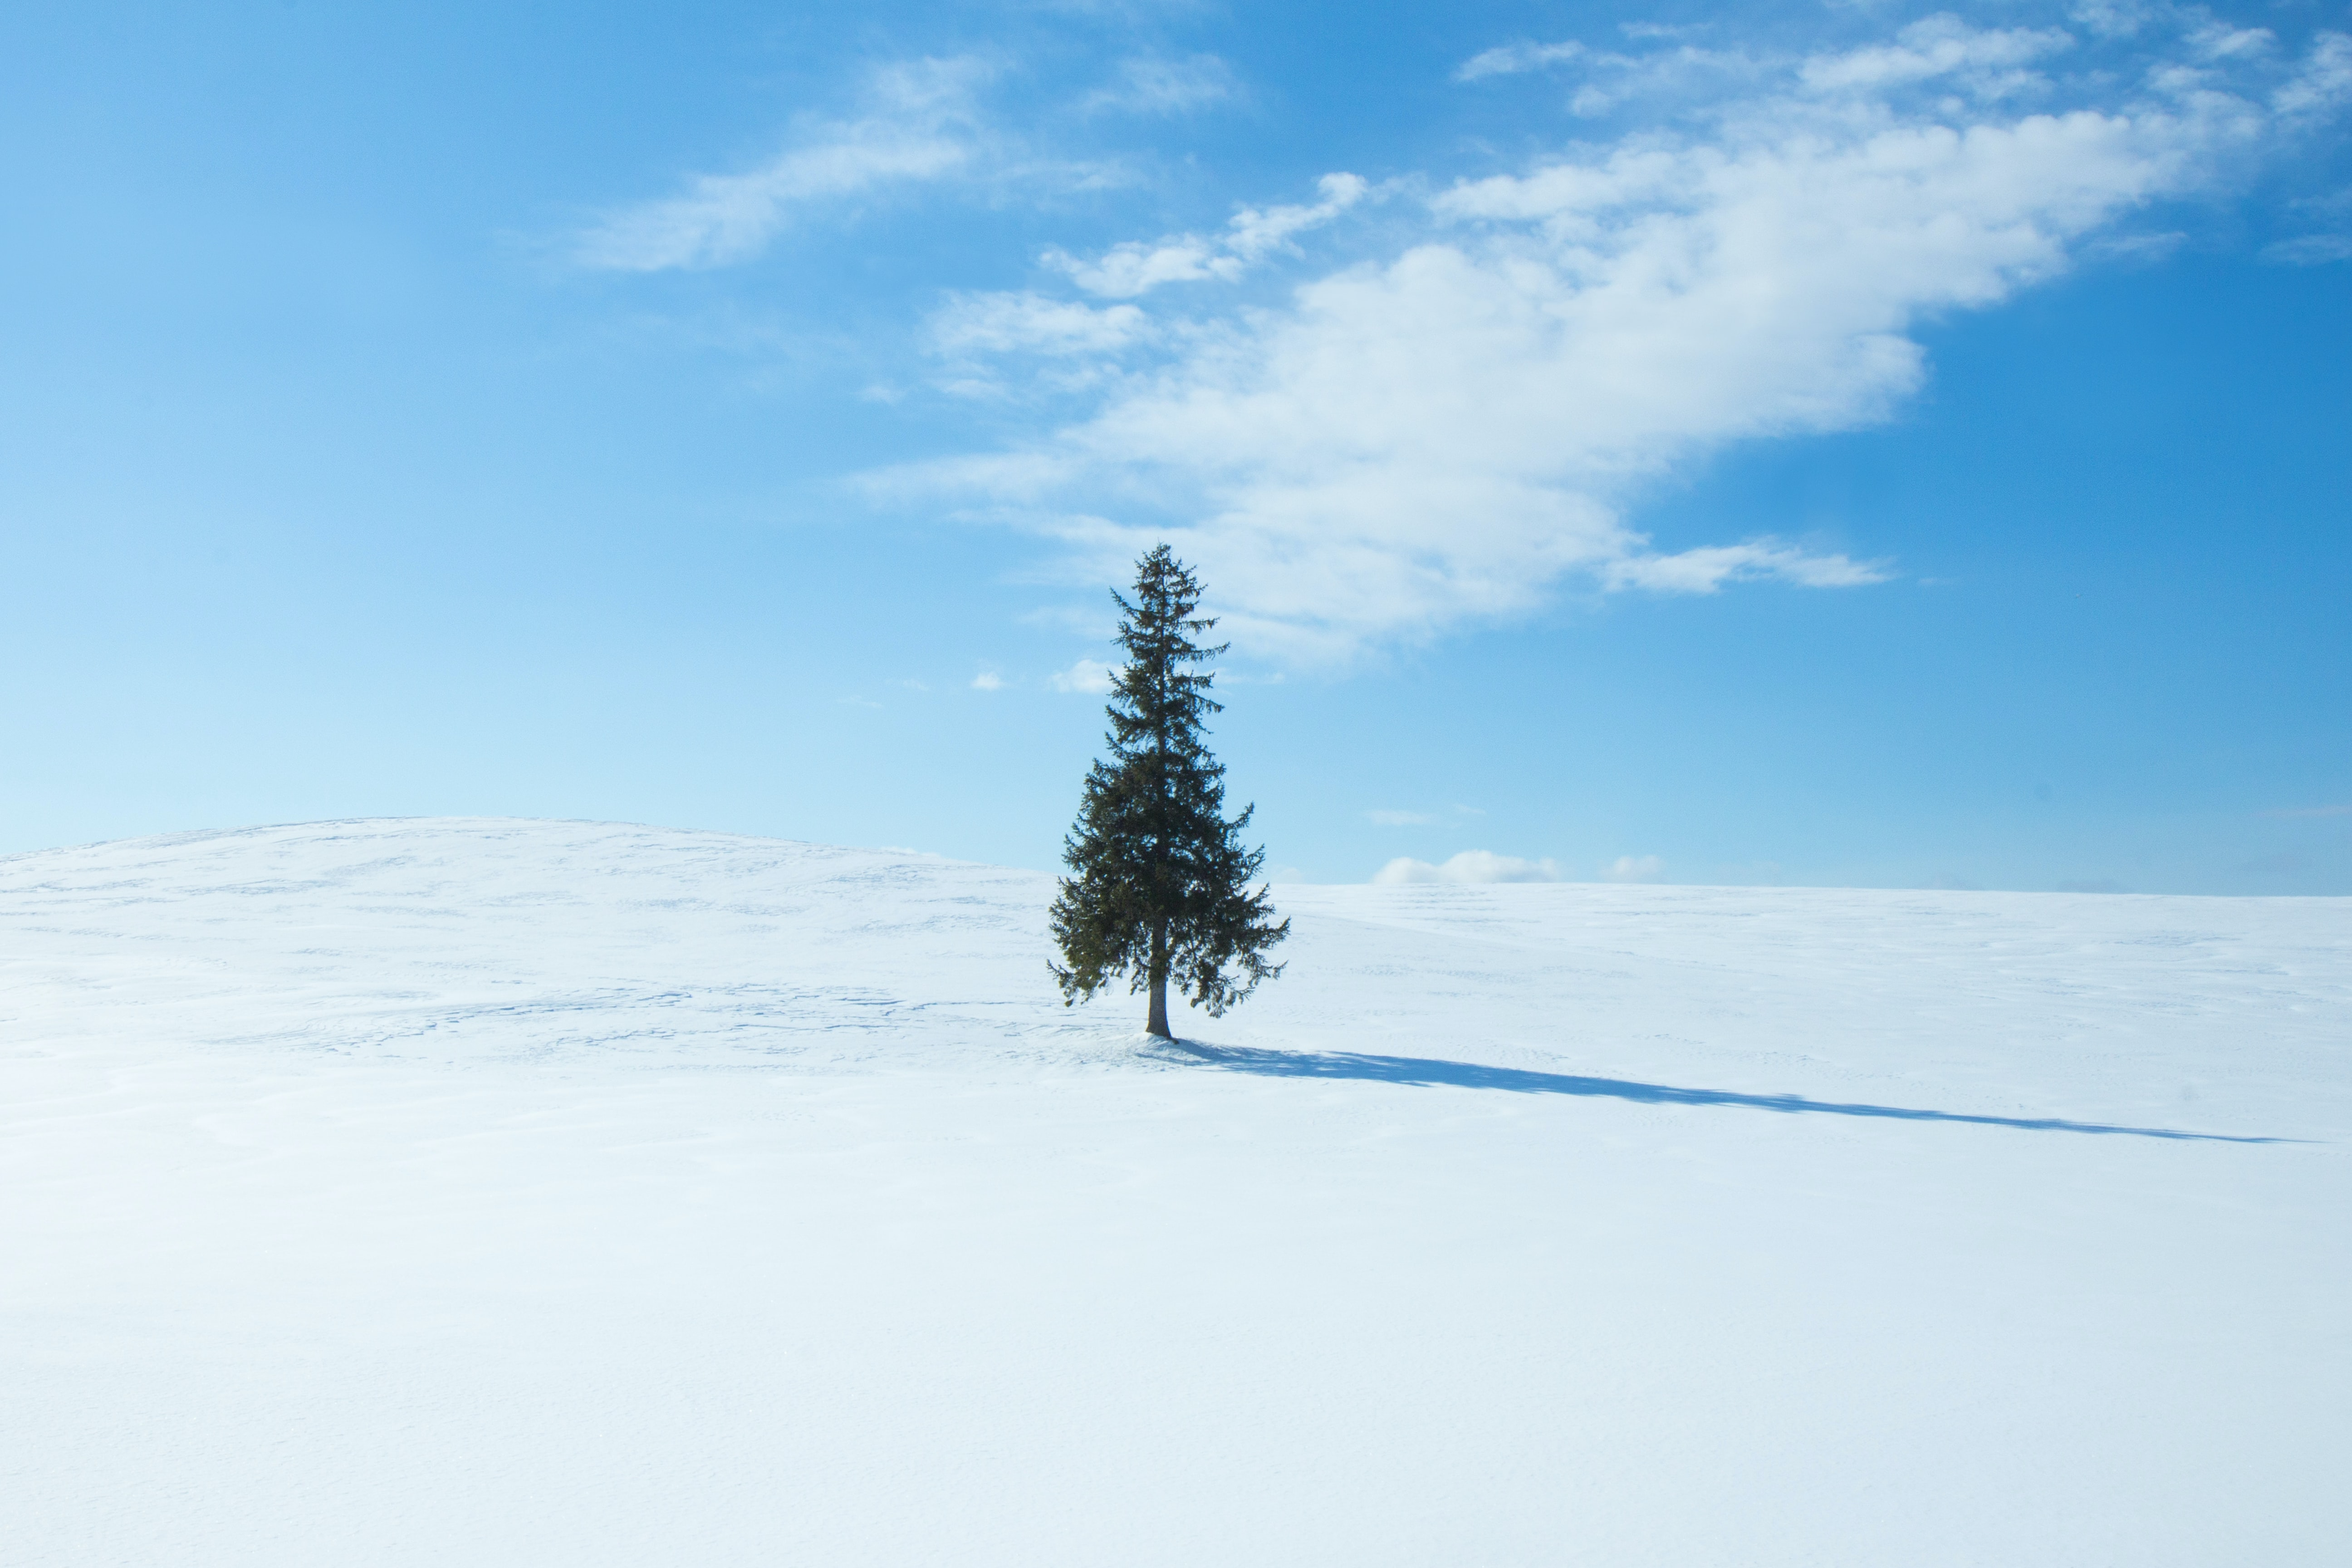 green pine tree at middle of field